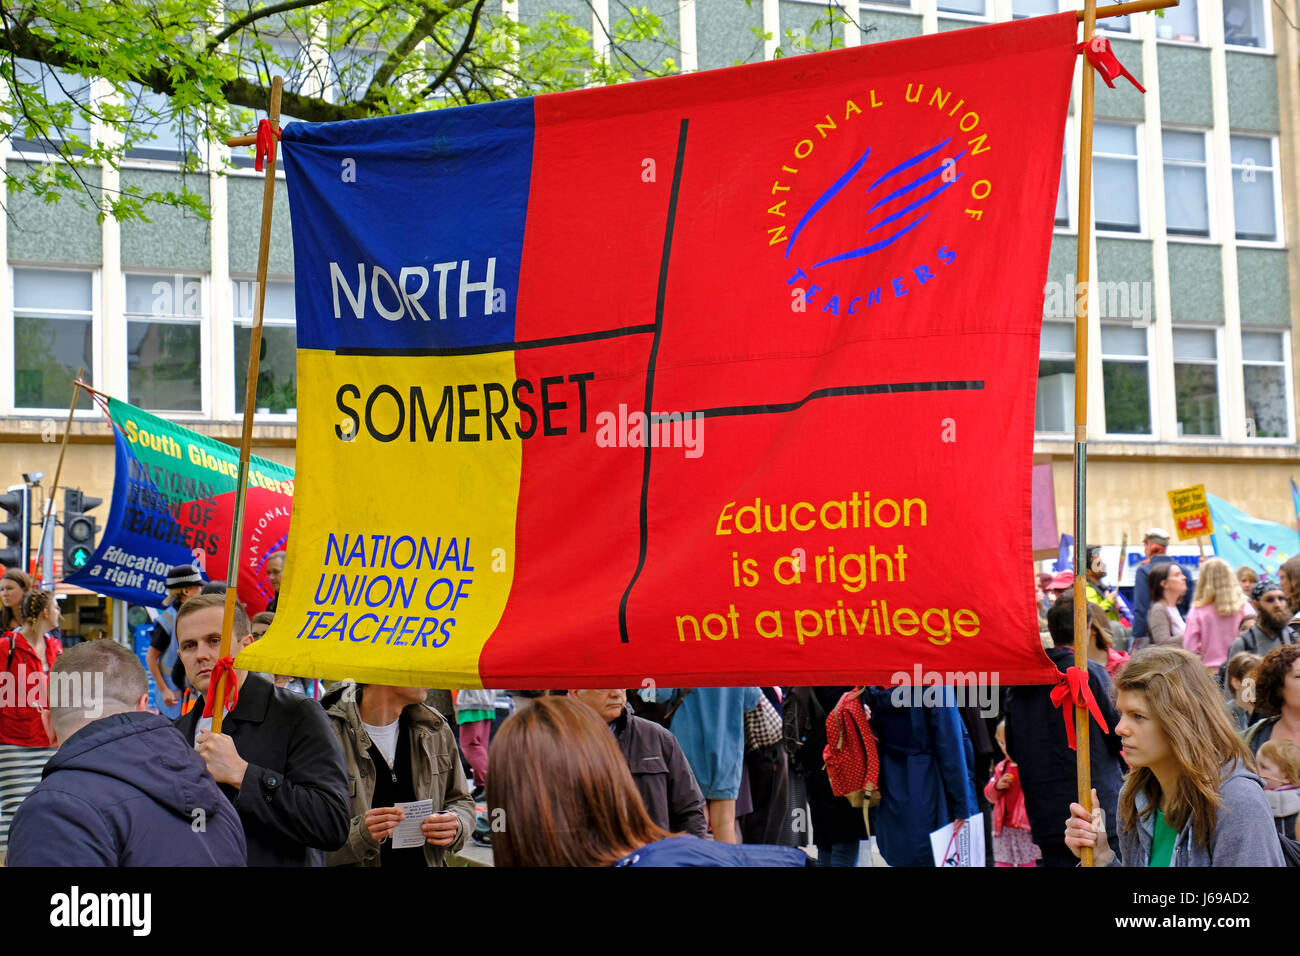 Bristol, UK. 20th May, 2017. Protestors against the government's education policies march through the city streets. - Stock Image